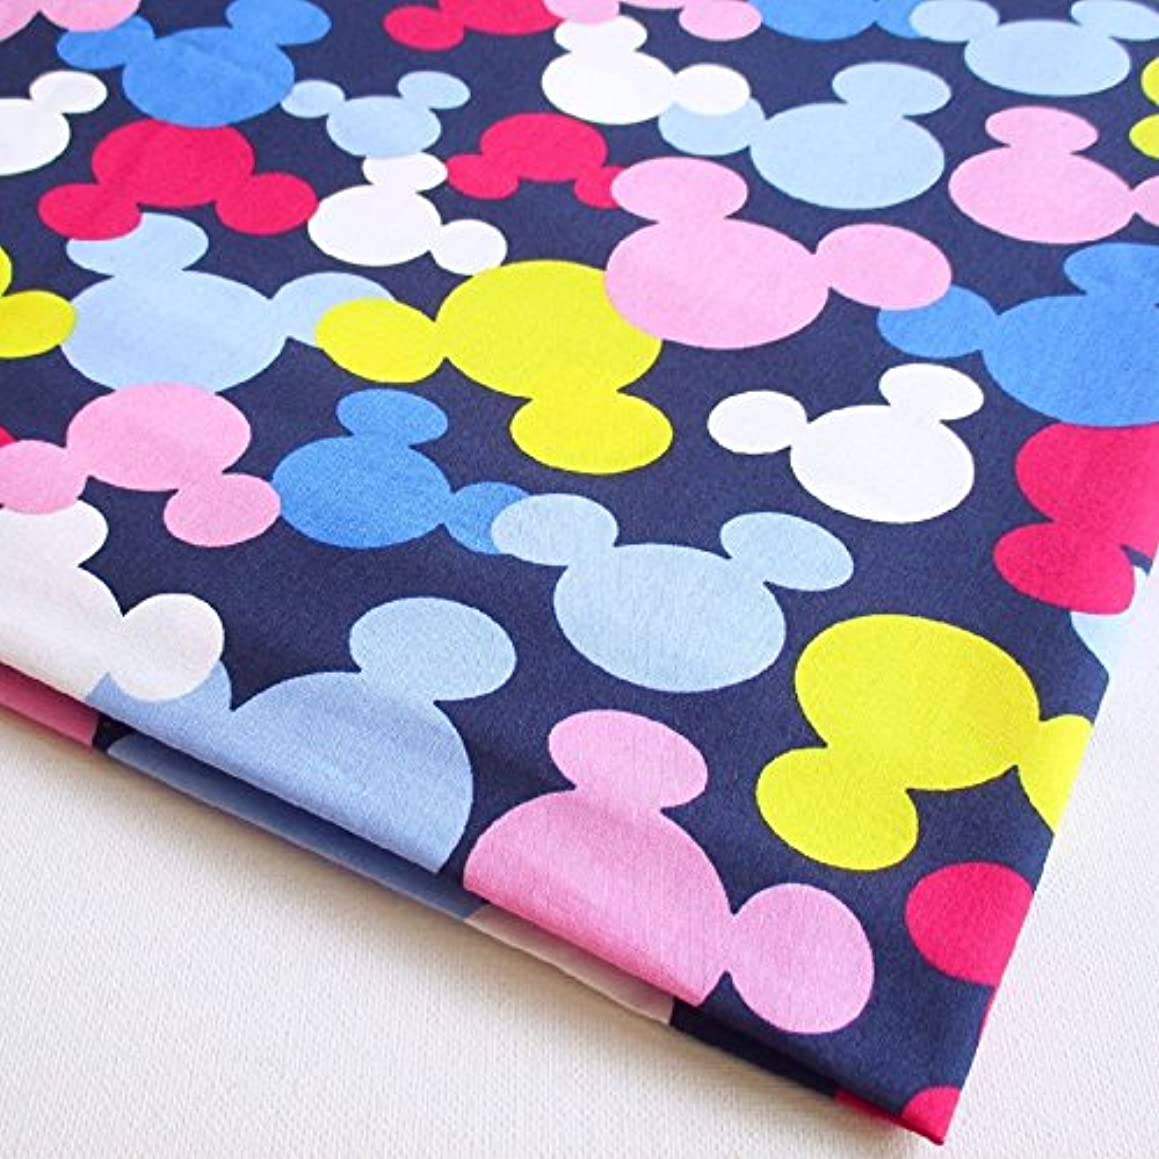 Mickey Mouse Minnie Mouse Style Cartoon Colorful Dark Blue Fabric 36 by 36-Inch Wide (1 Yard) (CT613)